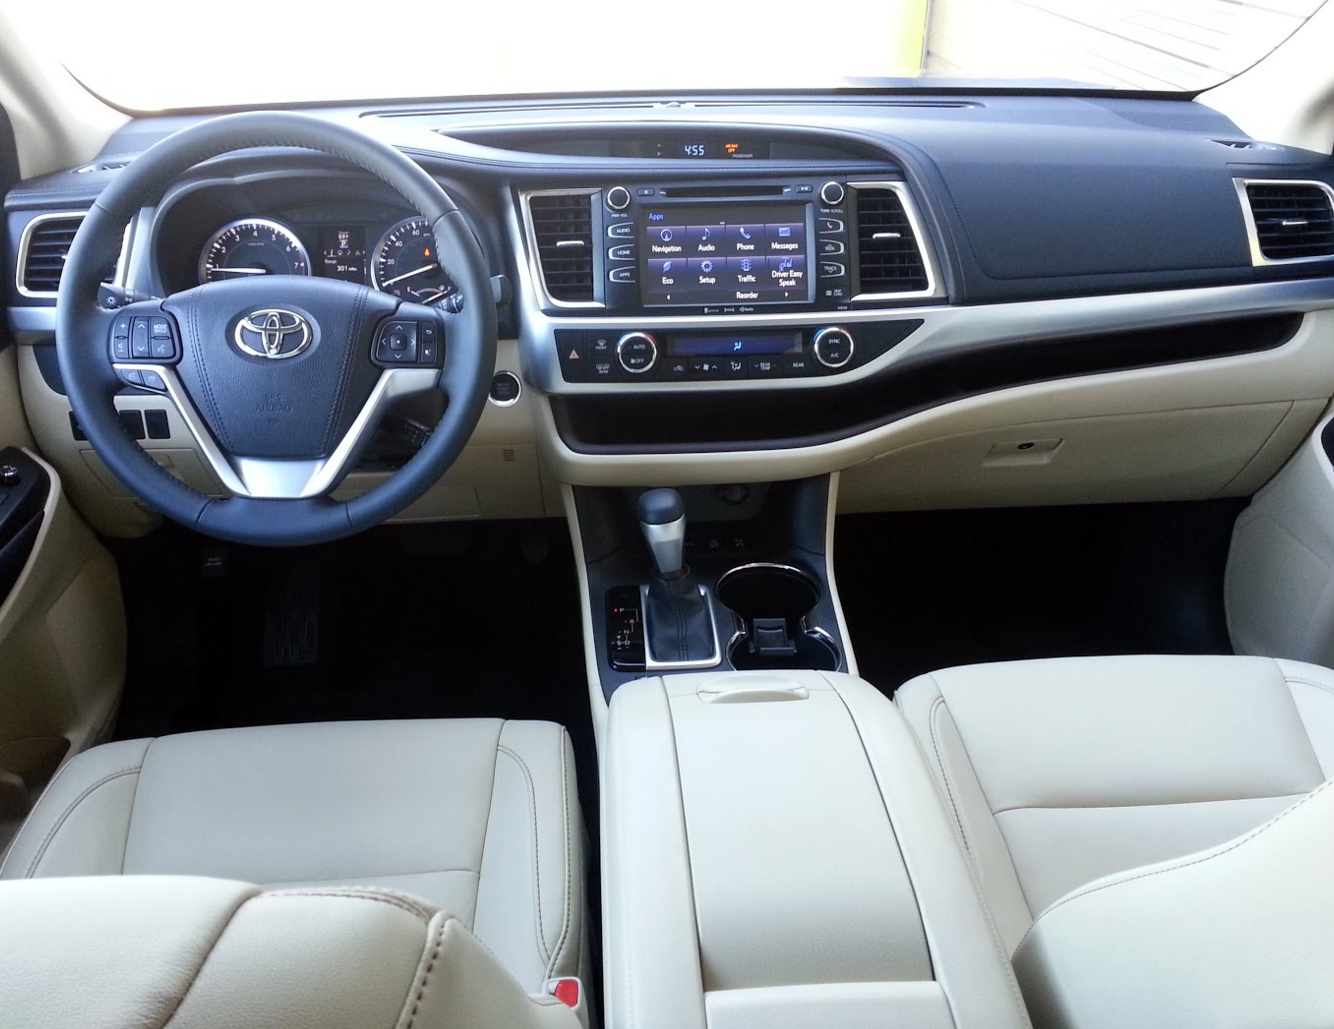 2016 Toyota Highlander The Daily Drive | Consumer Guide®